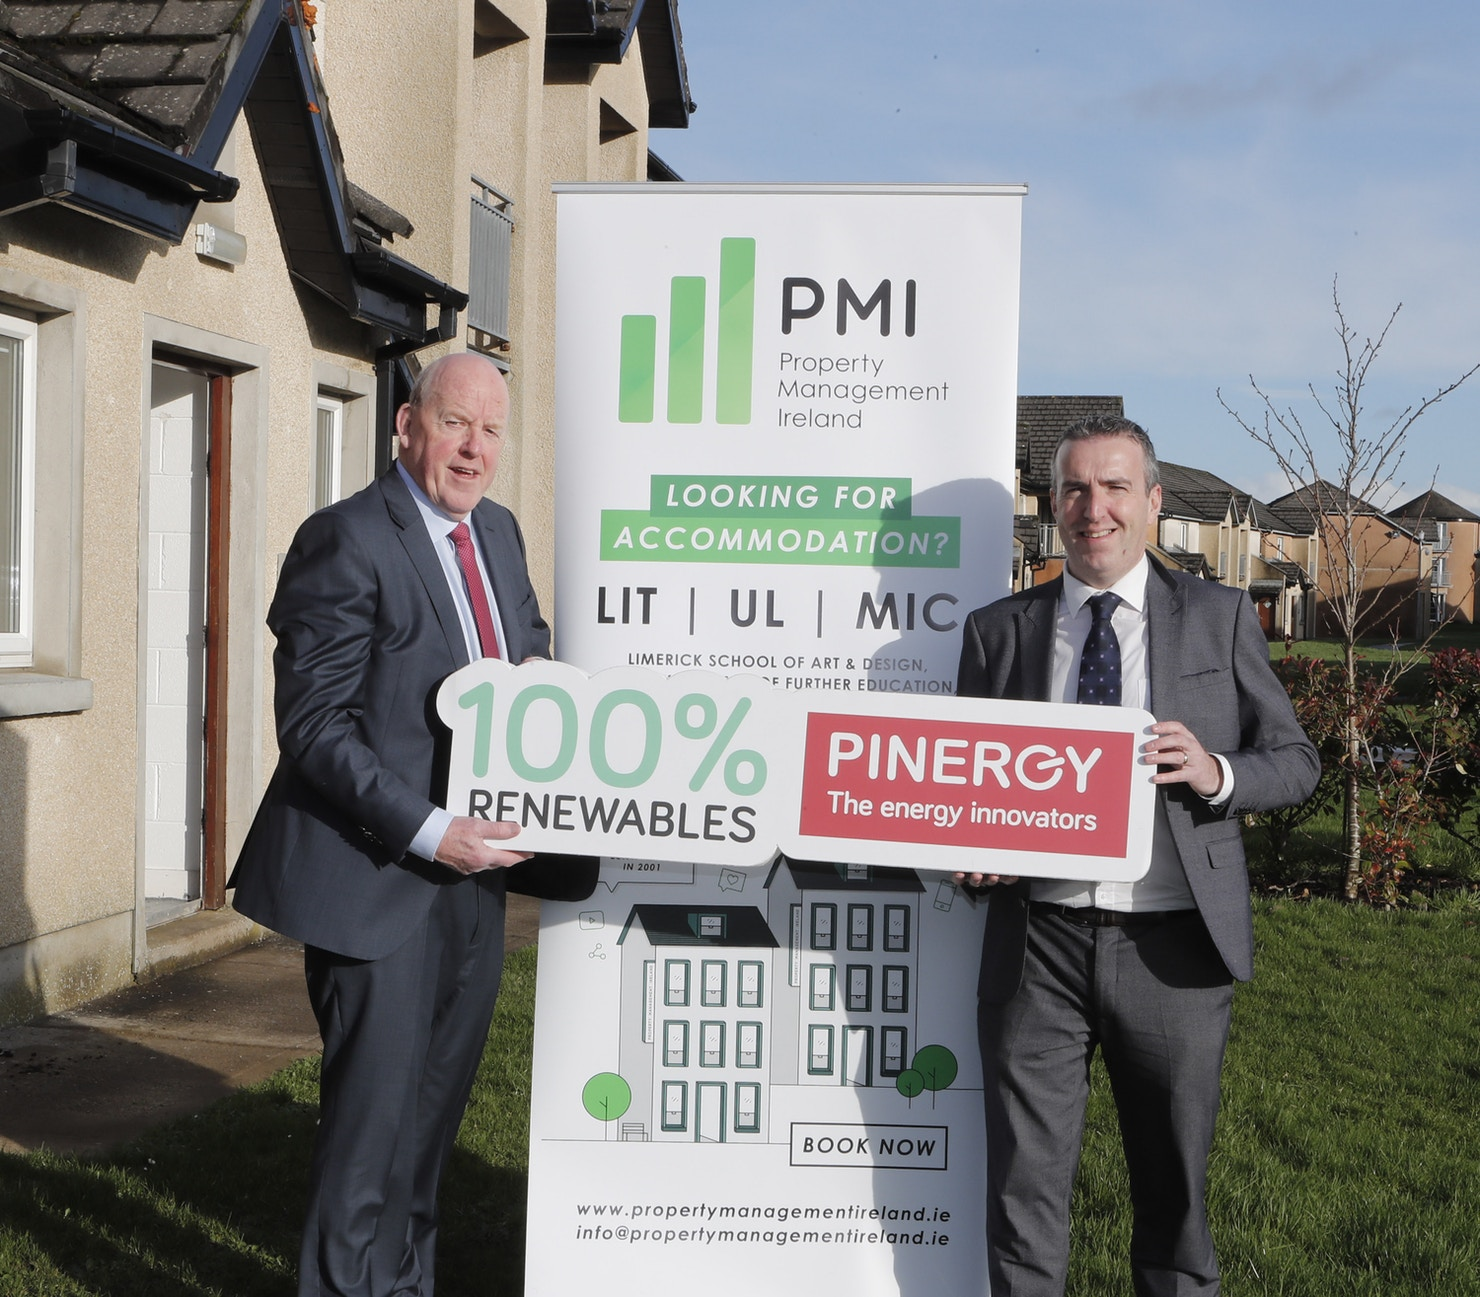 Pinergy provides sustainable solutions for Limerick students